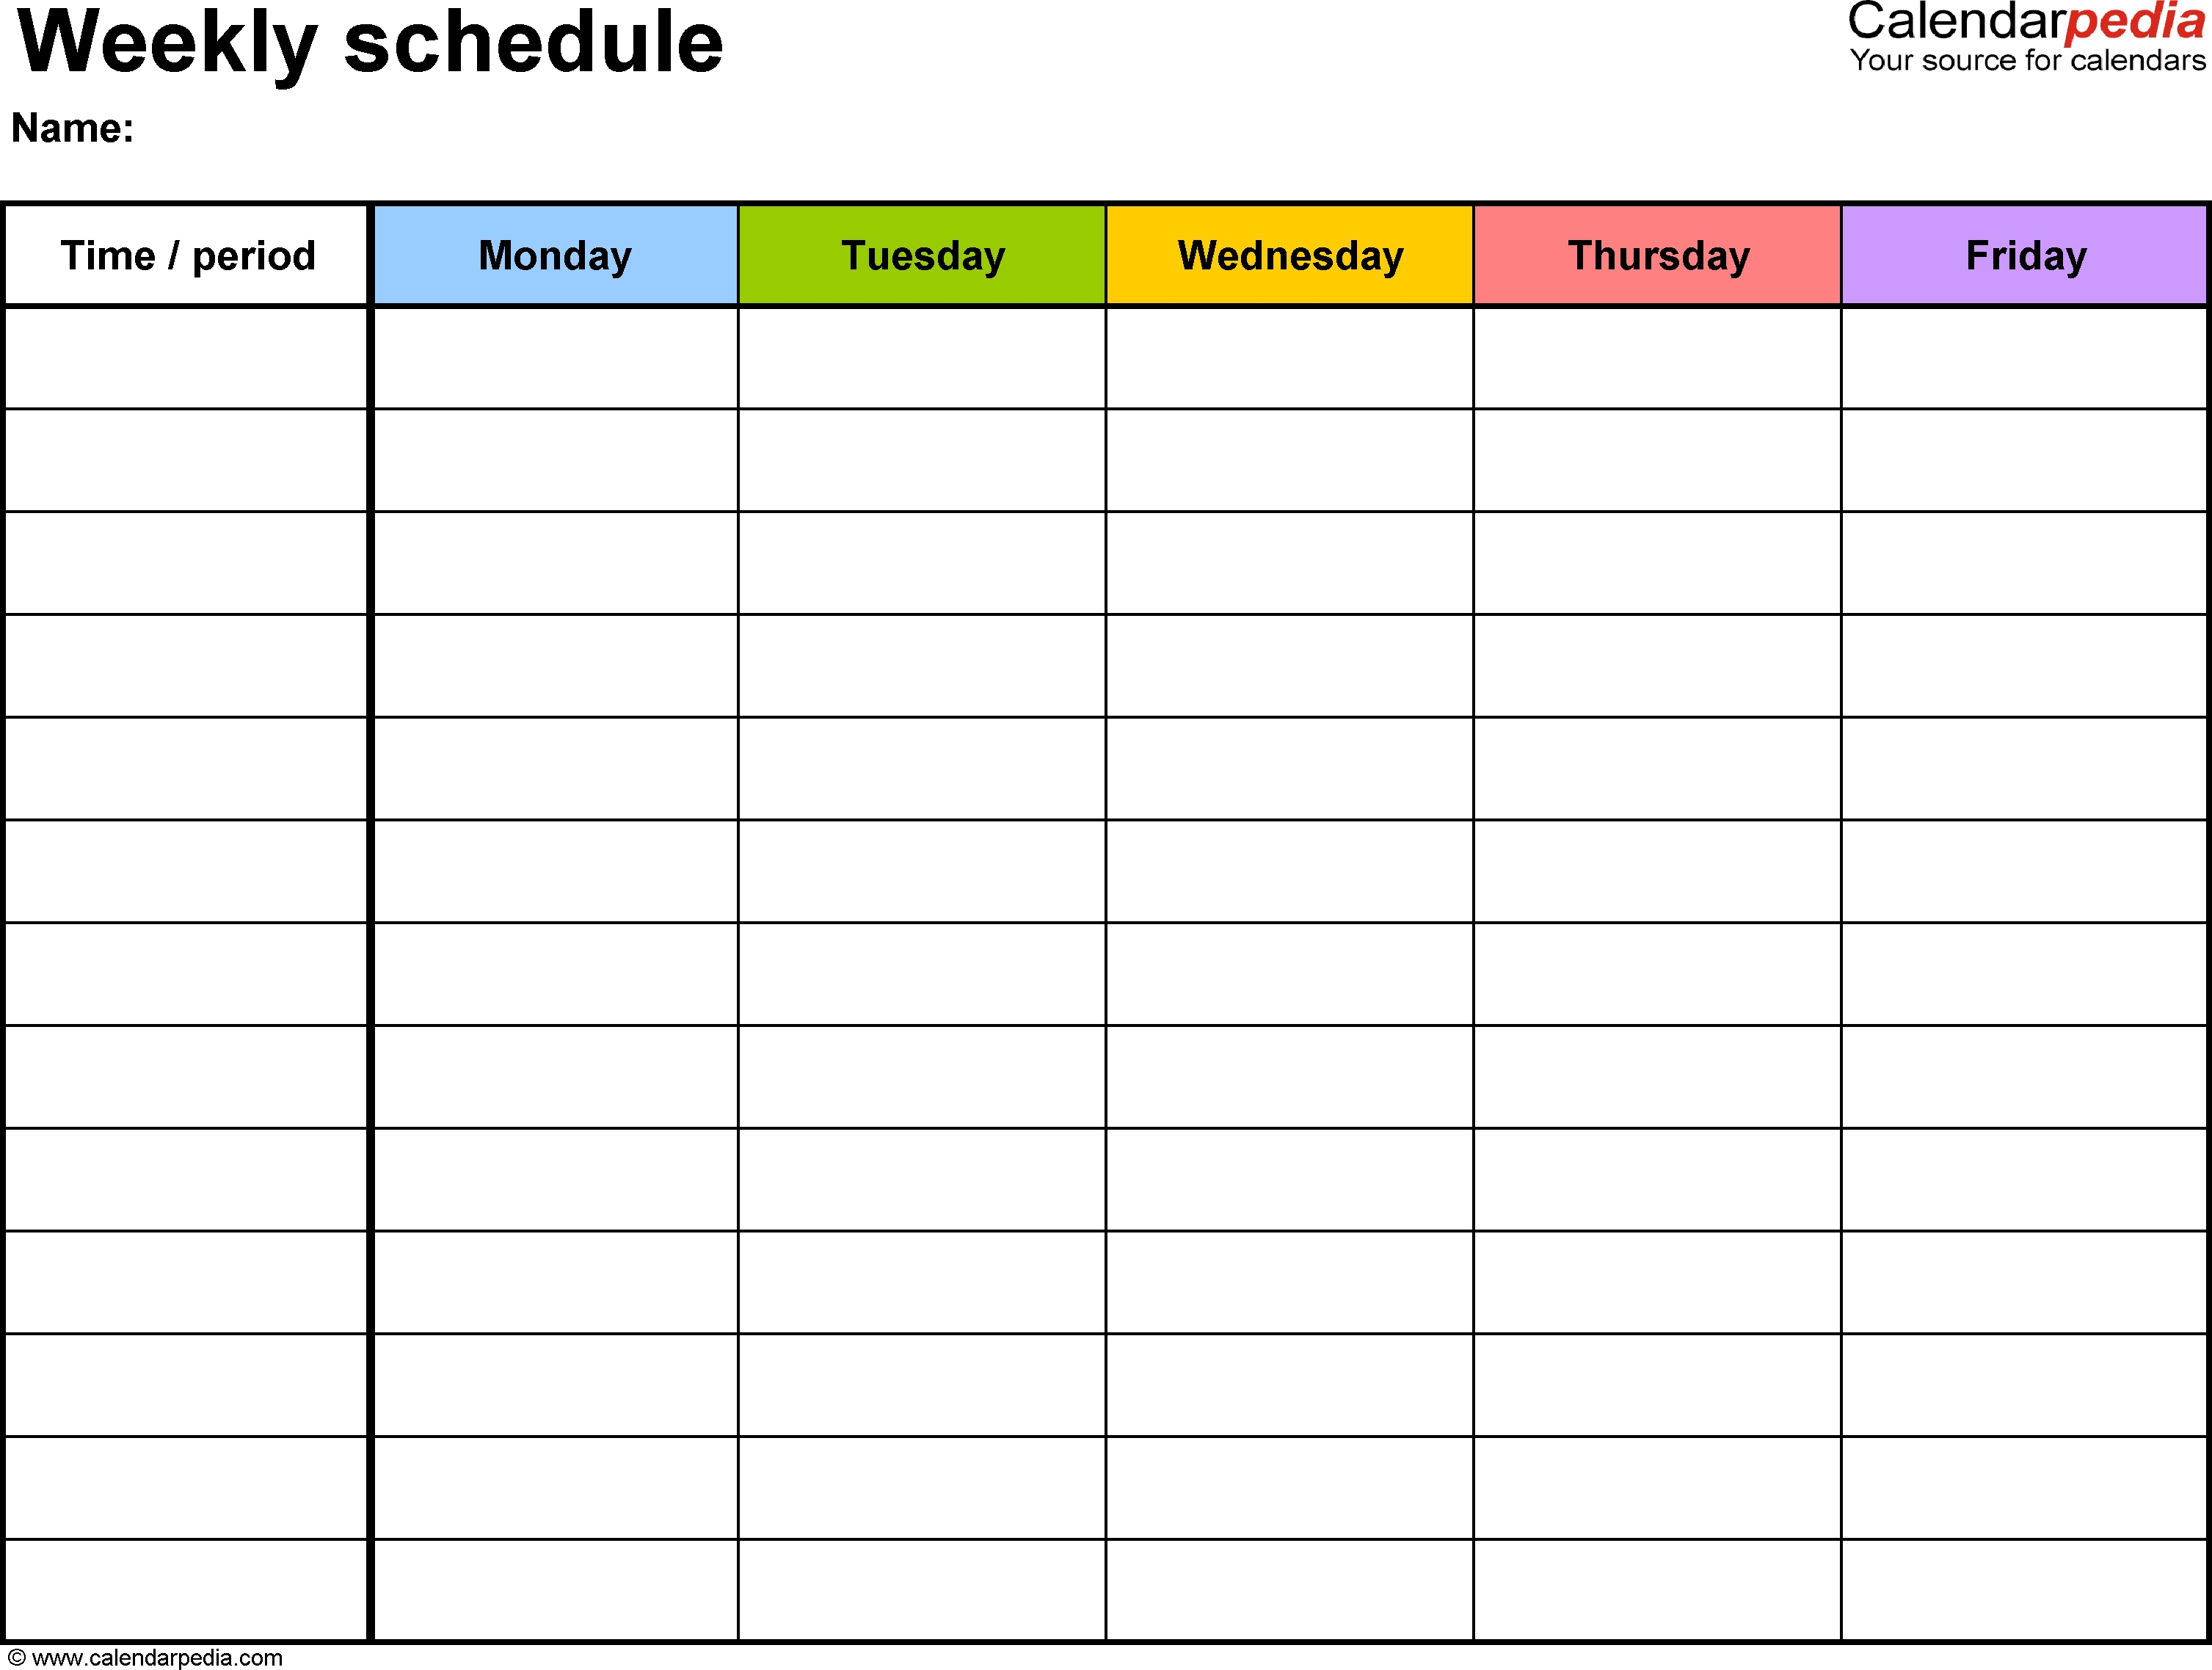 Free Weekly Schedule Templates For Pdf - 18 Templates intended for Monday Through Sunday Weekly Horizontal Calendar